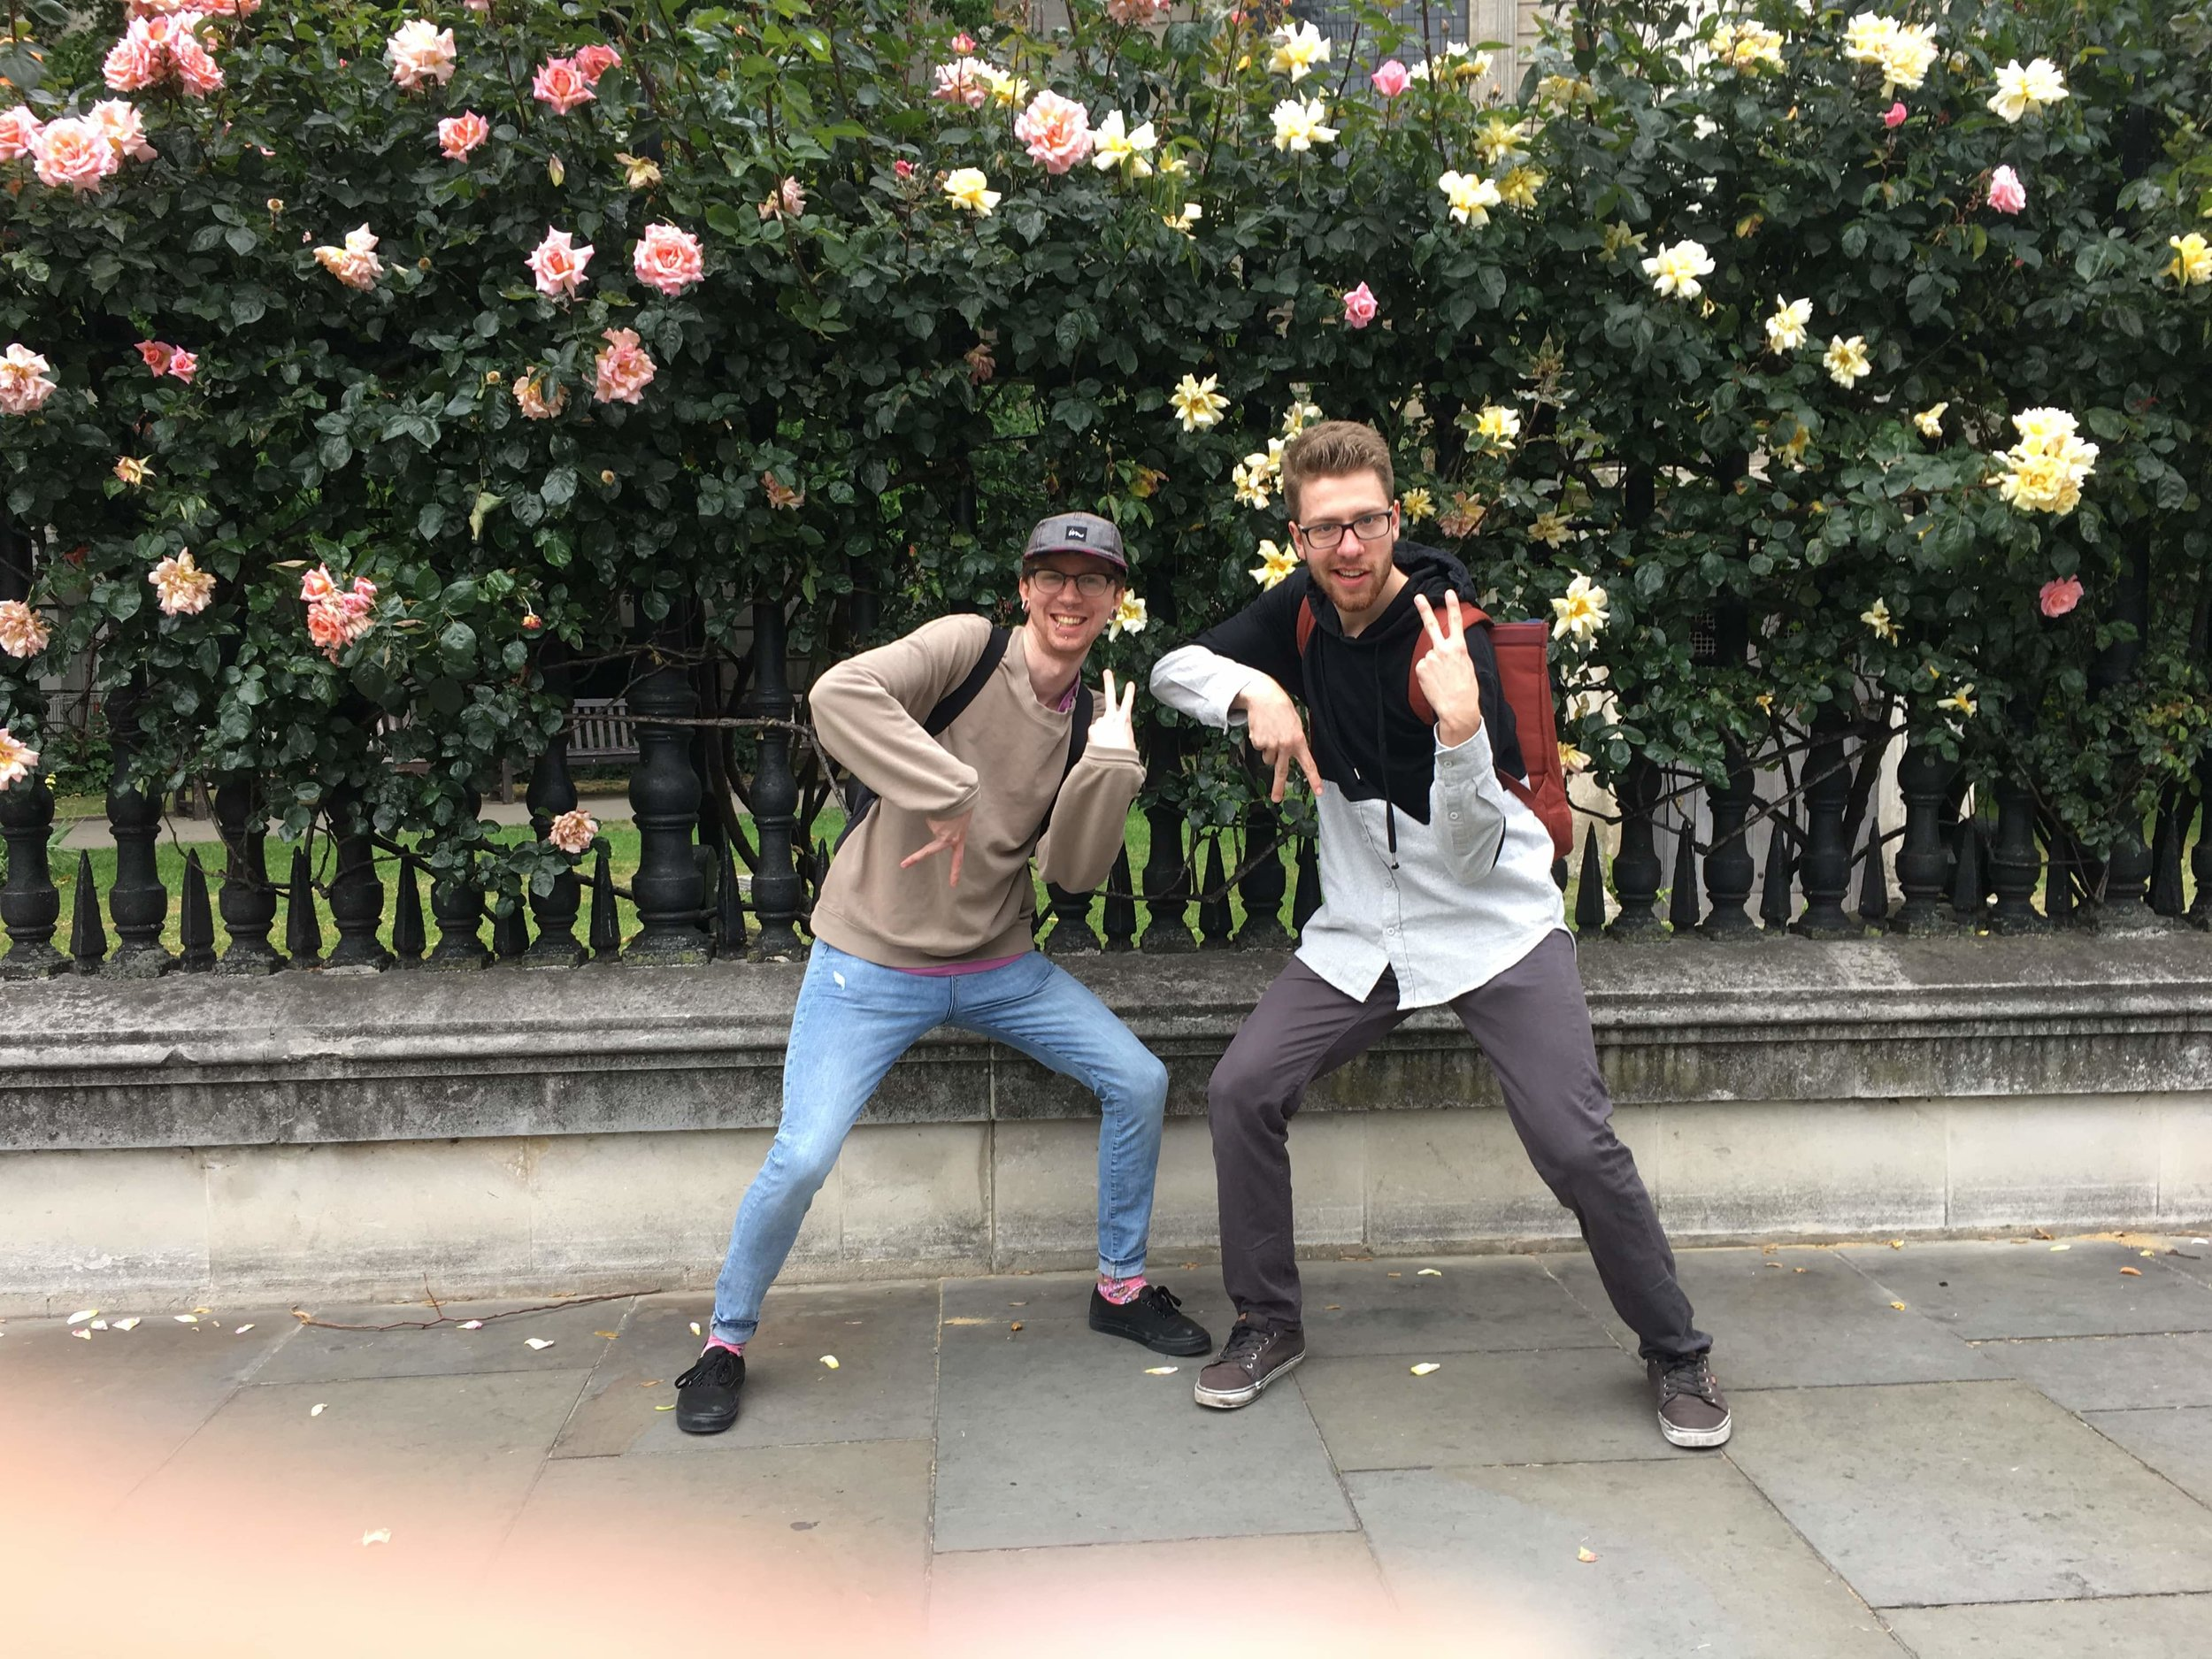 Mark (left) posing with Reggie (by St. Paul's beautiful rose bushes) on the way to the Tate Modern.